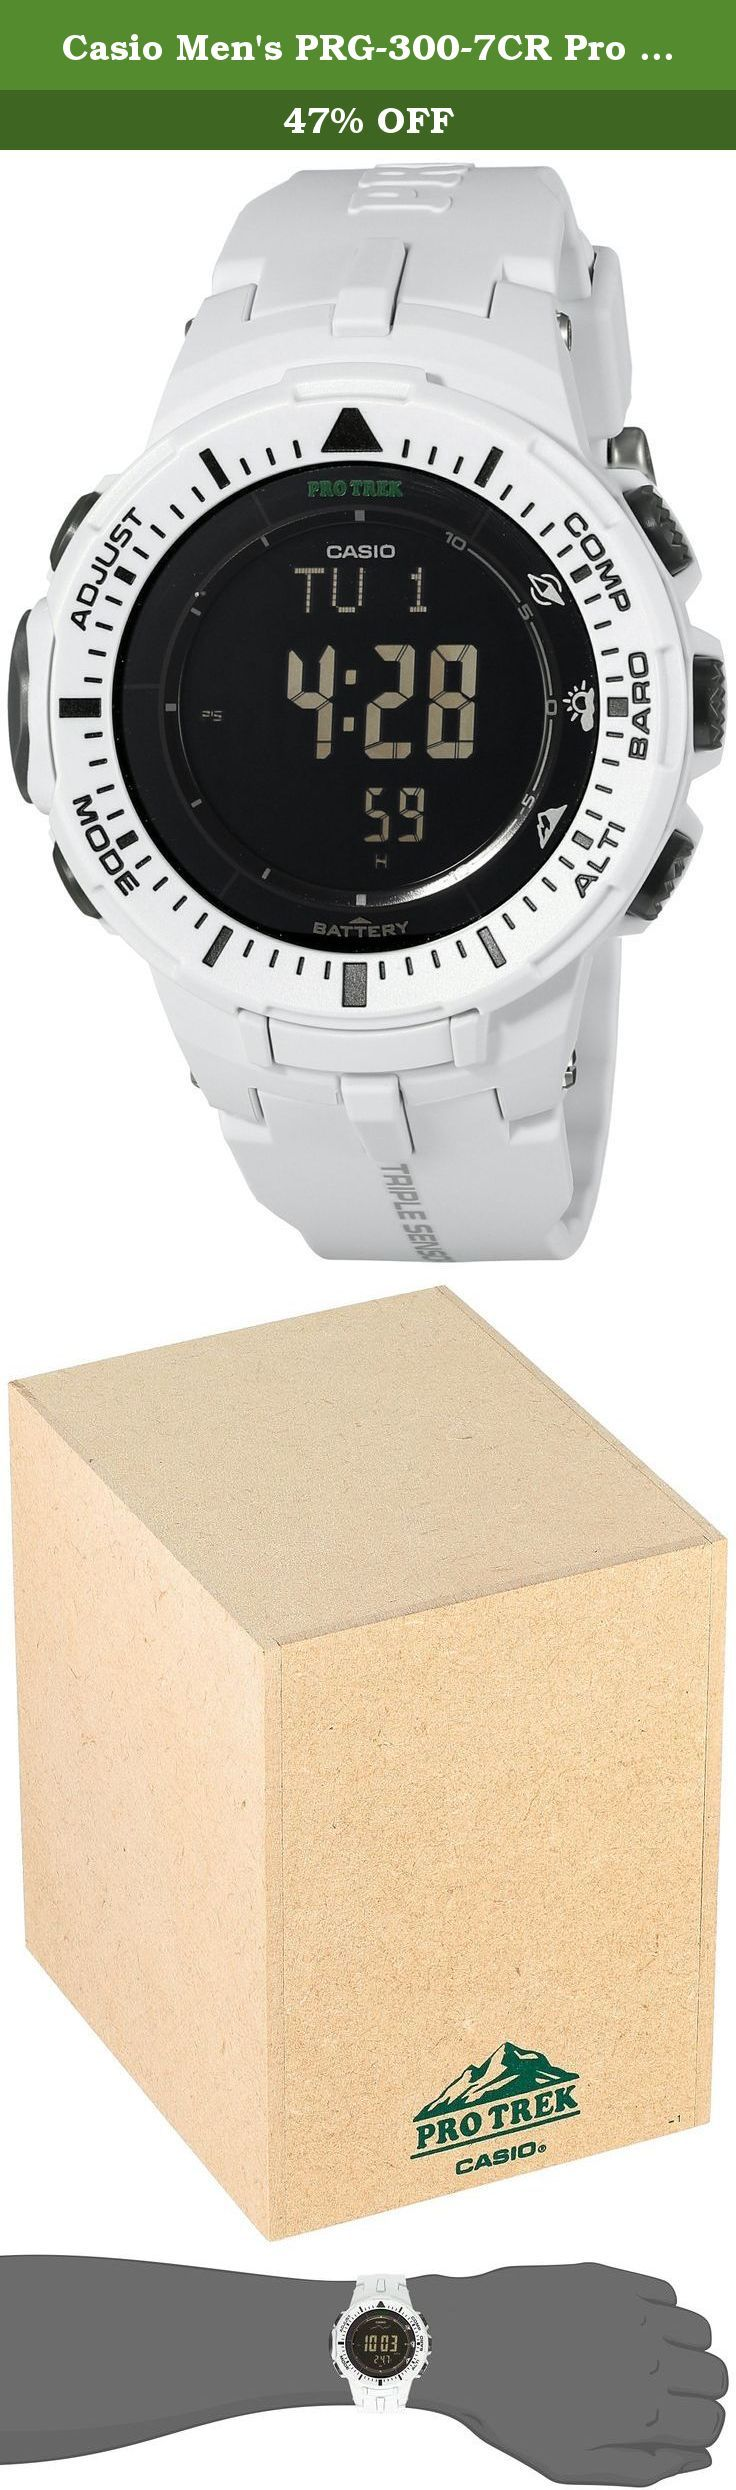 Casio Men's PRG-300-7CR Pro Trek Digital Watch with White Band. Features. Band Type - Resin. Color - White. Dial Code - Digital. Tough Solar Power. 100 M Water Resistant. Low Temperature Resistant -10 C 14 FSpecification. Altimeter. Measuring range - -700 to 10000 m.. Measuring unit - 1 m.. Manual memory measurements up to 30 records each including altitude date time. Auto log data Highlow altitudes auto cumulative ascent and descent. Trek log data up to 14 records of highlow altitudes…